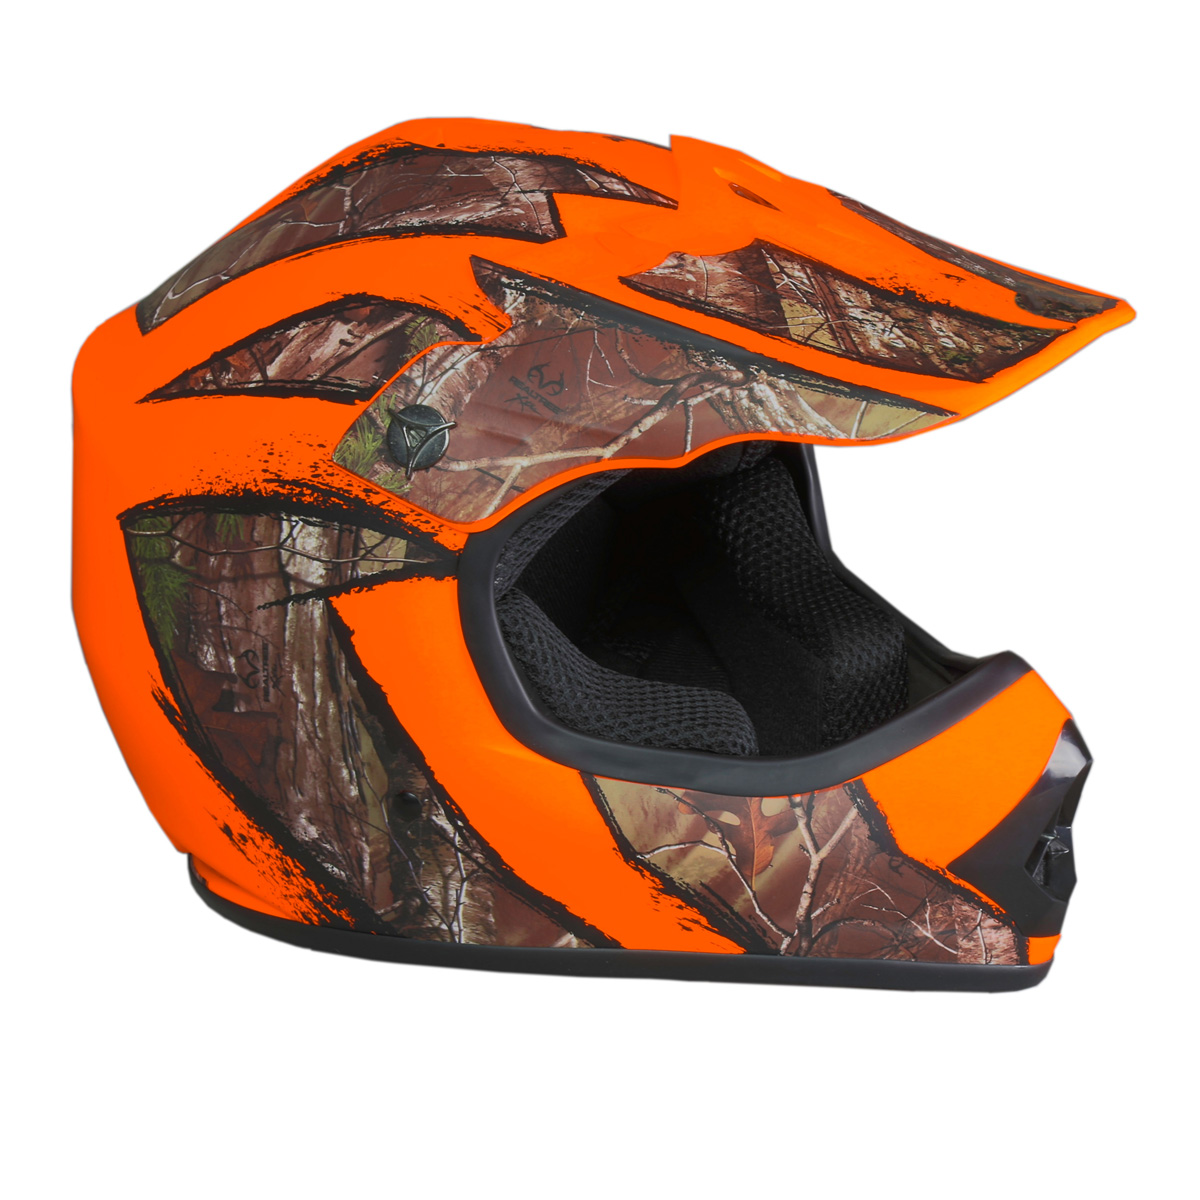 SHC Youth MX / ATV Helmet Realtree Xtra Camo - DOT Approved - Boys Girls Kids